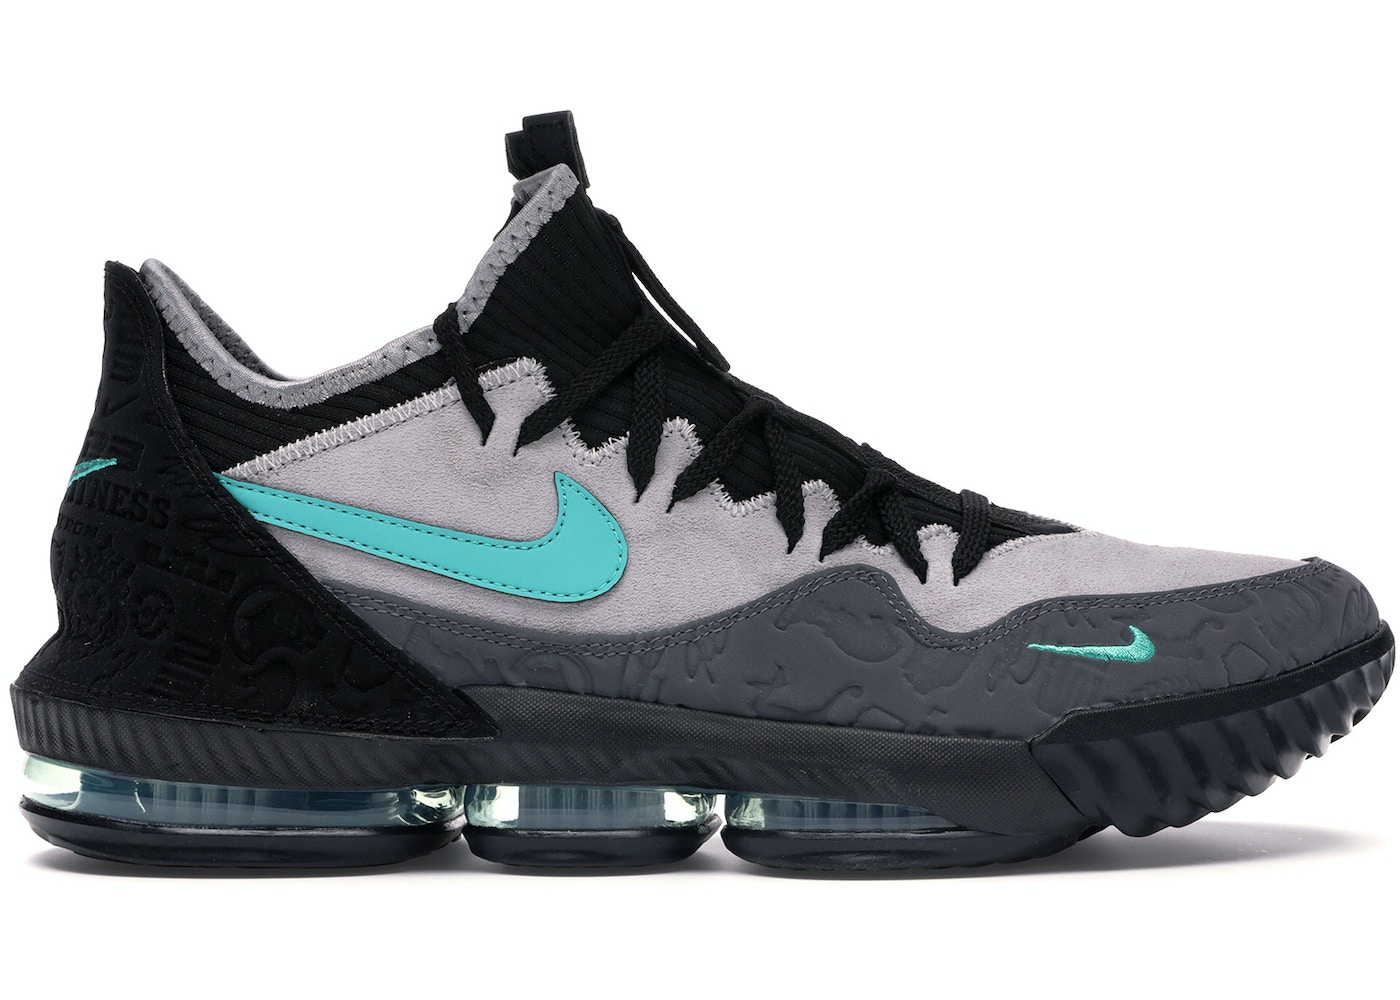 new arrivals 8eacf 410a0 LeBron 16 Low Atmos Clear Jade